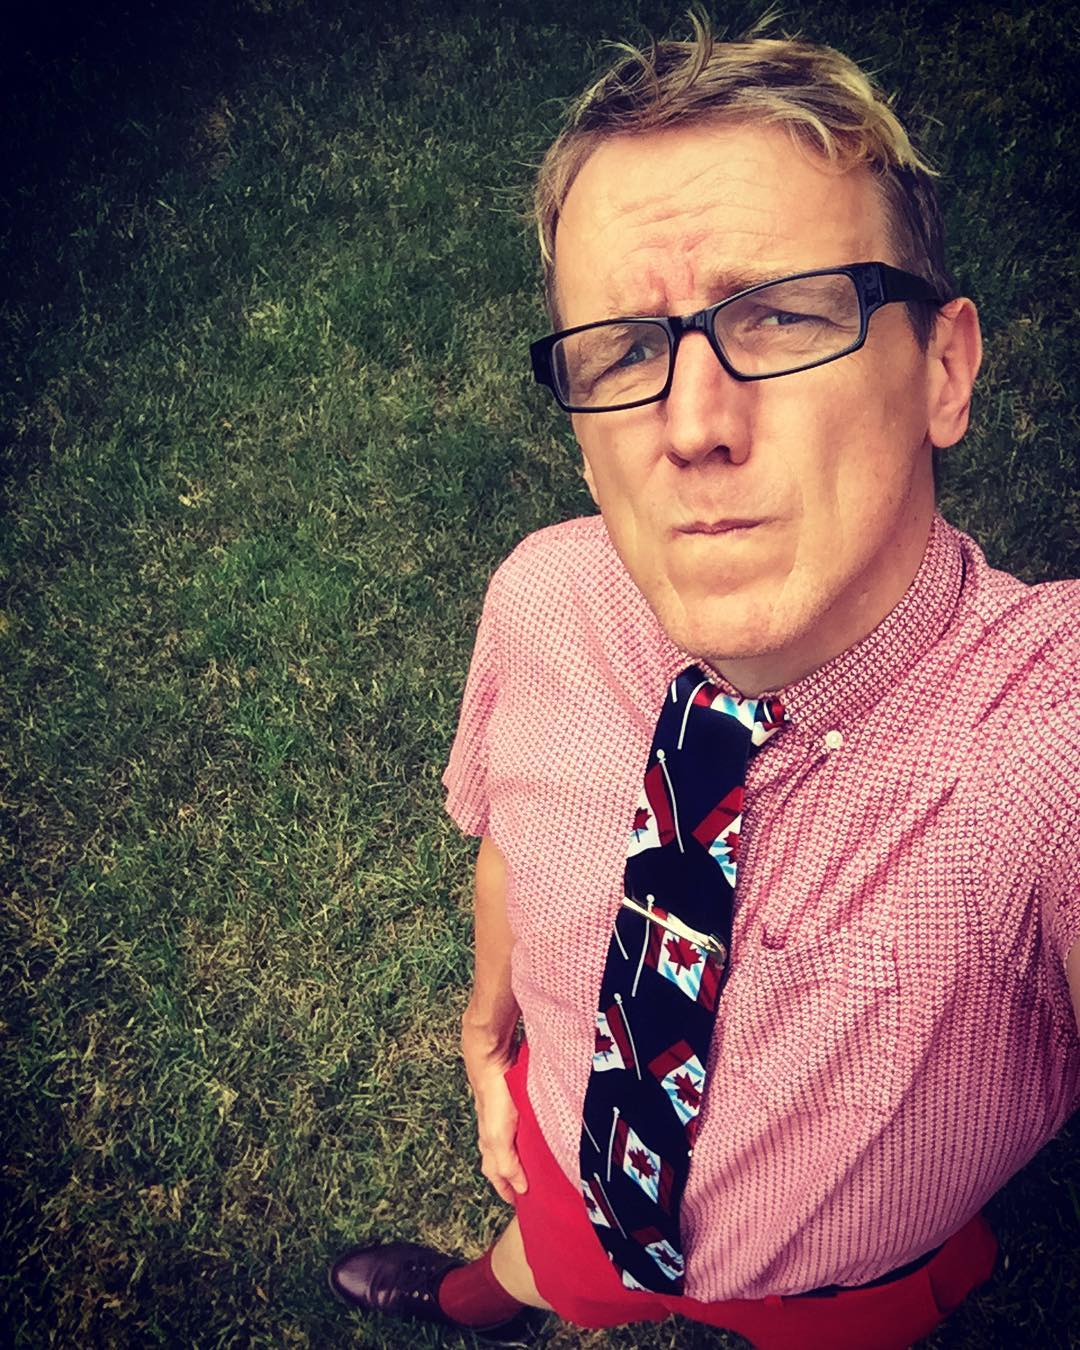 All red thinking of my peeps tomorrow celebrating #canadaday with #tiedayfriday from my mom